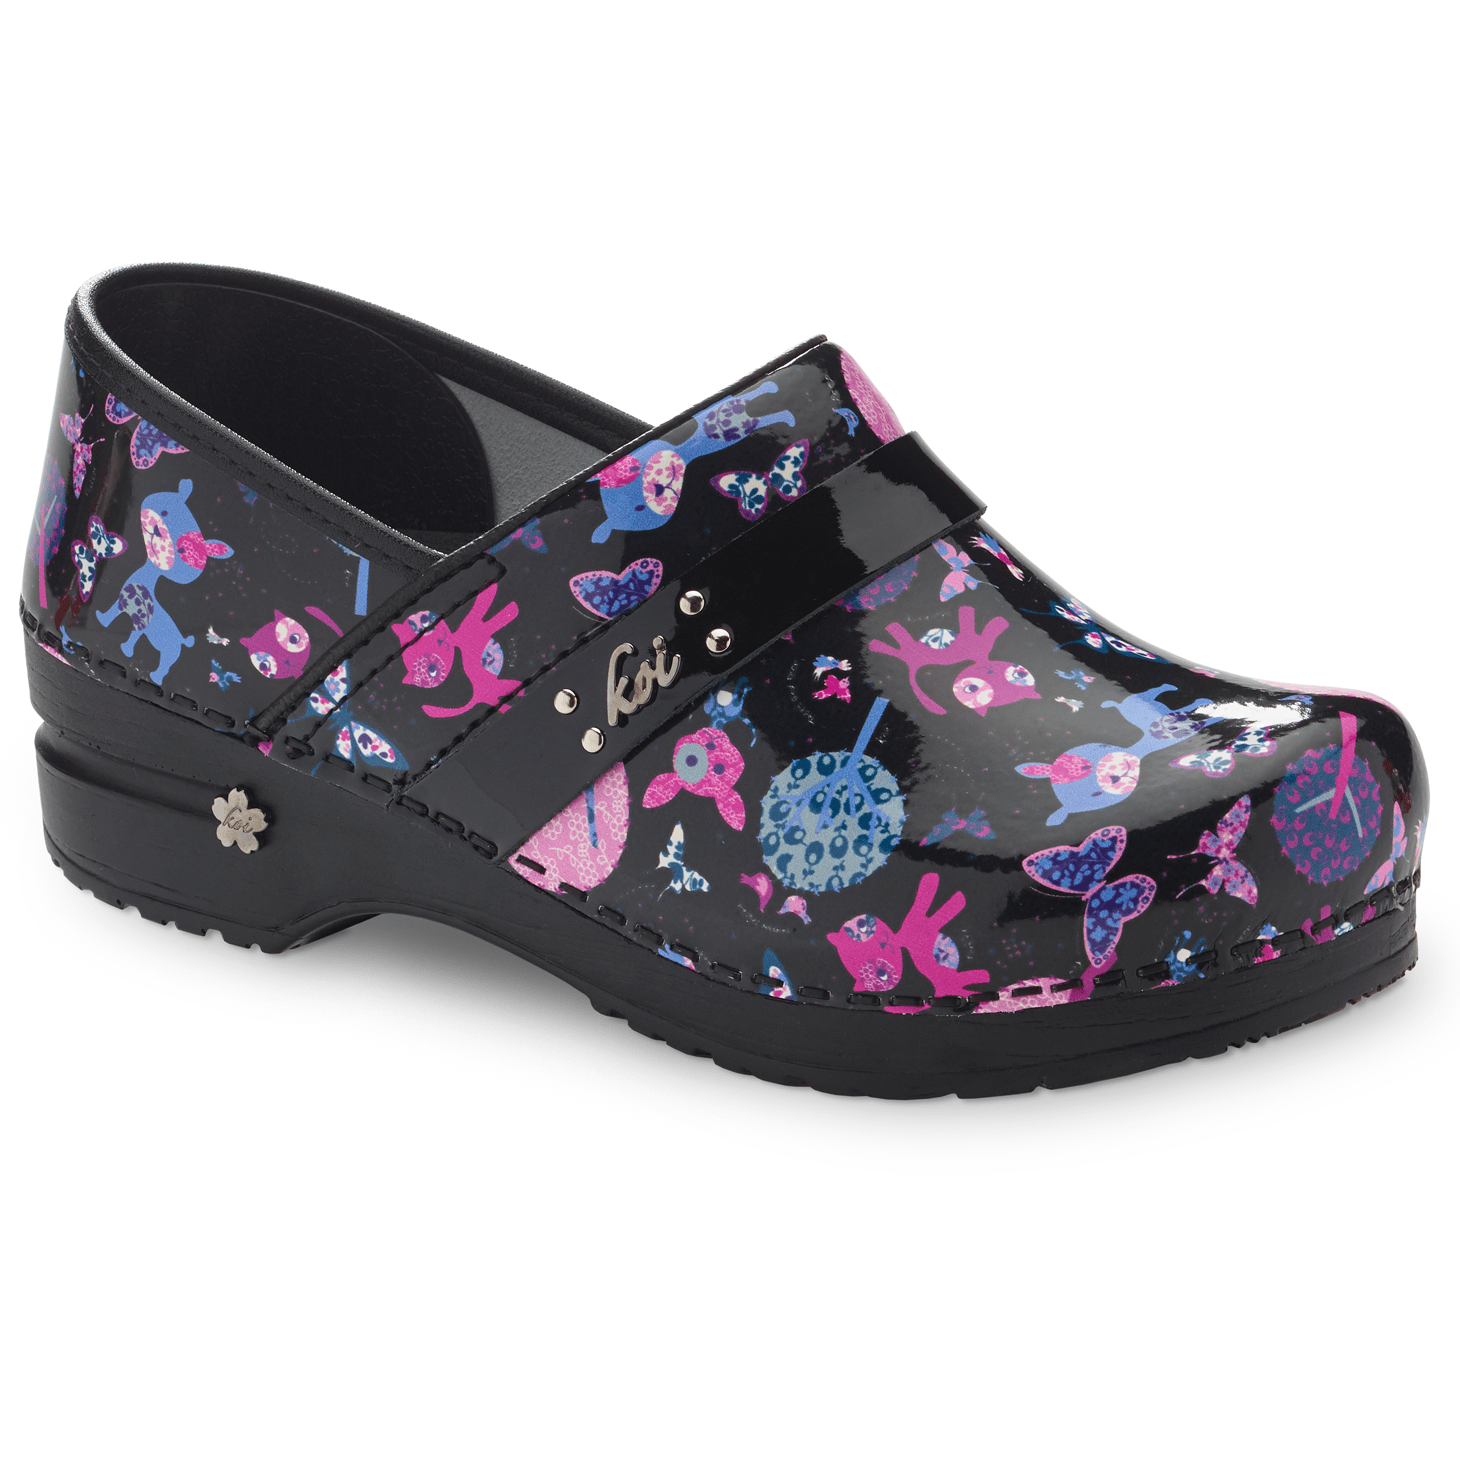 Sanita Pet Zoo Women's in Multi Closed Back Clog